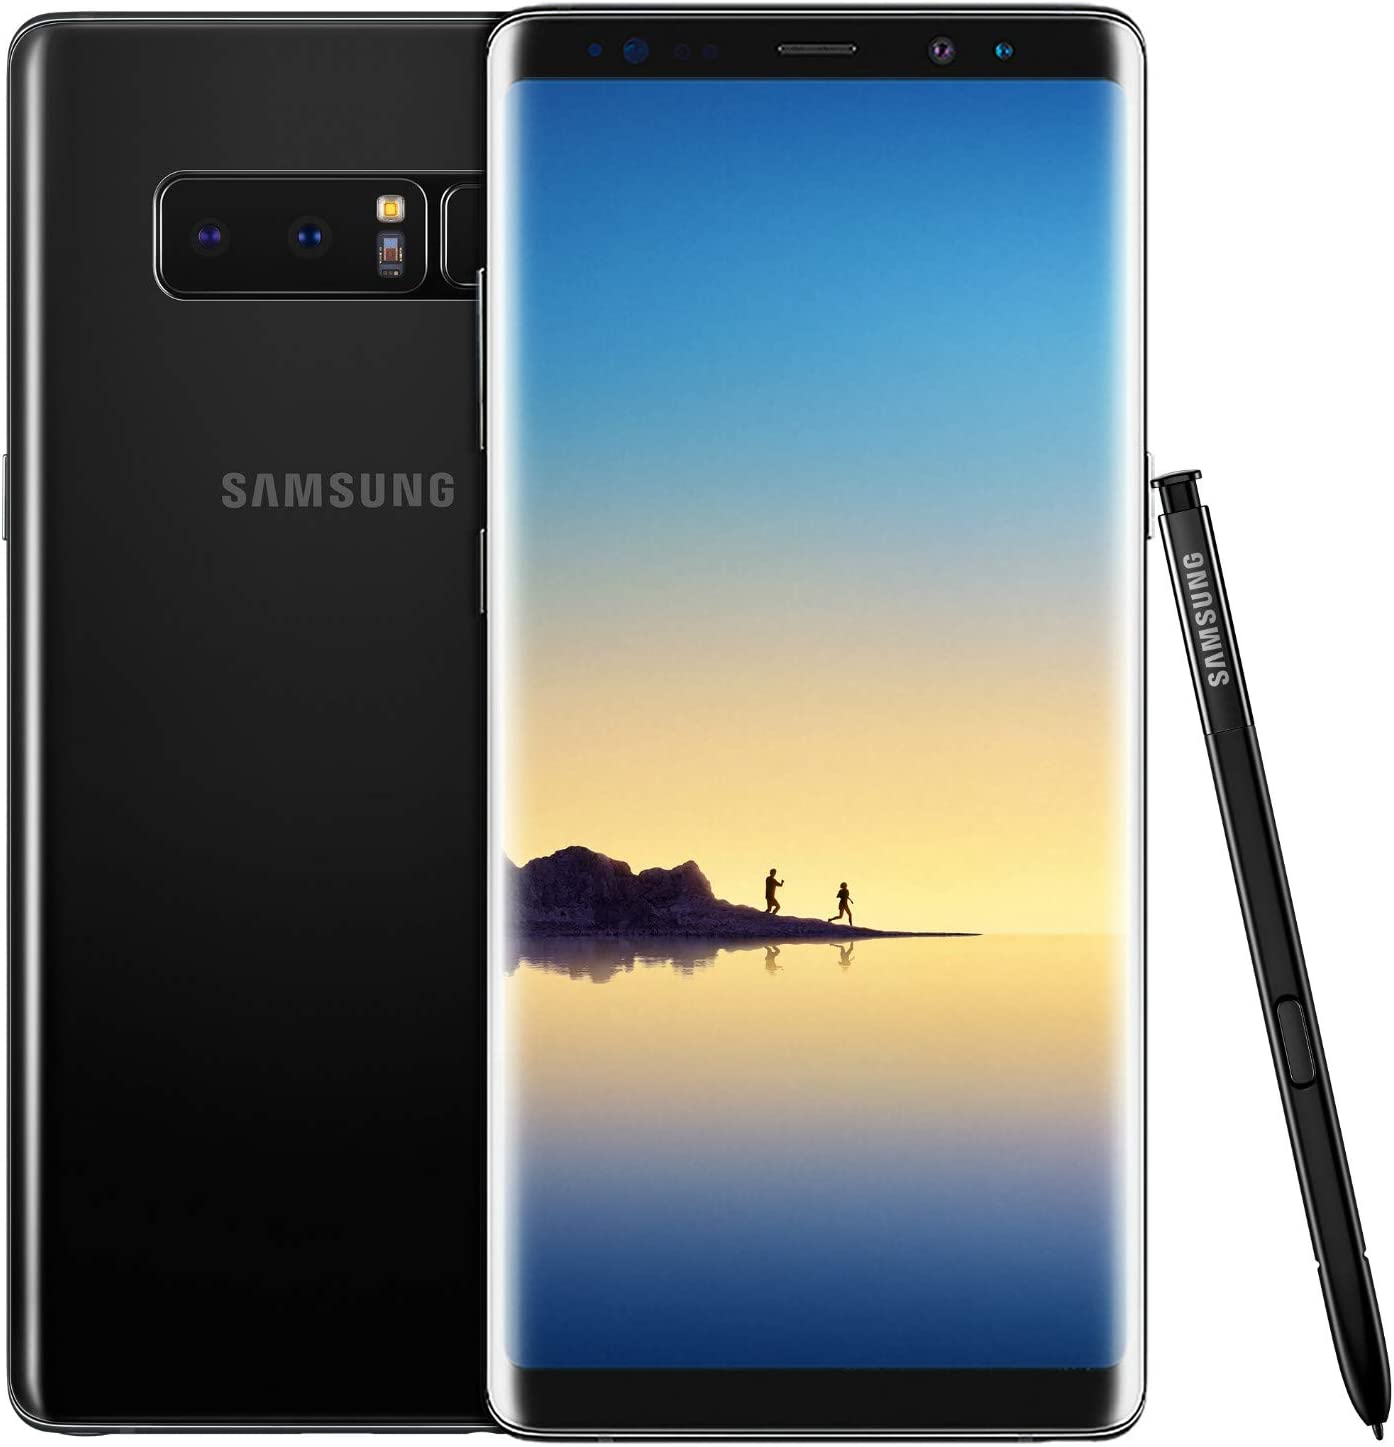 Samsung Galaxy Note 8 Dual SIM 64GB SM-N950F/DS Midnight Black: Amazon.es: Electrónica